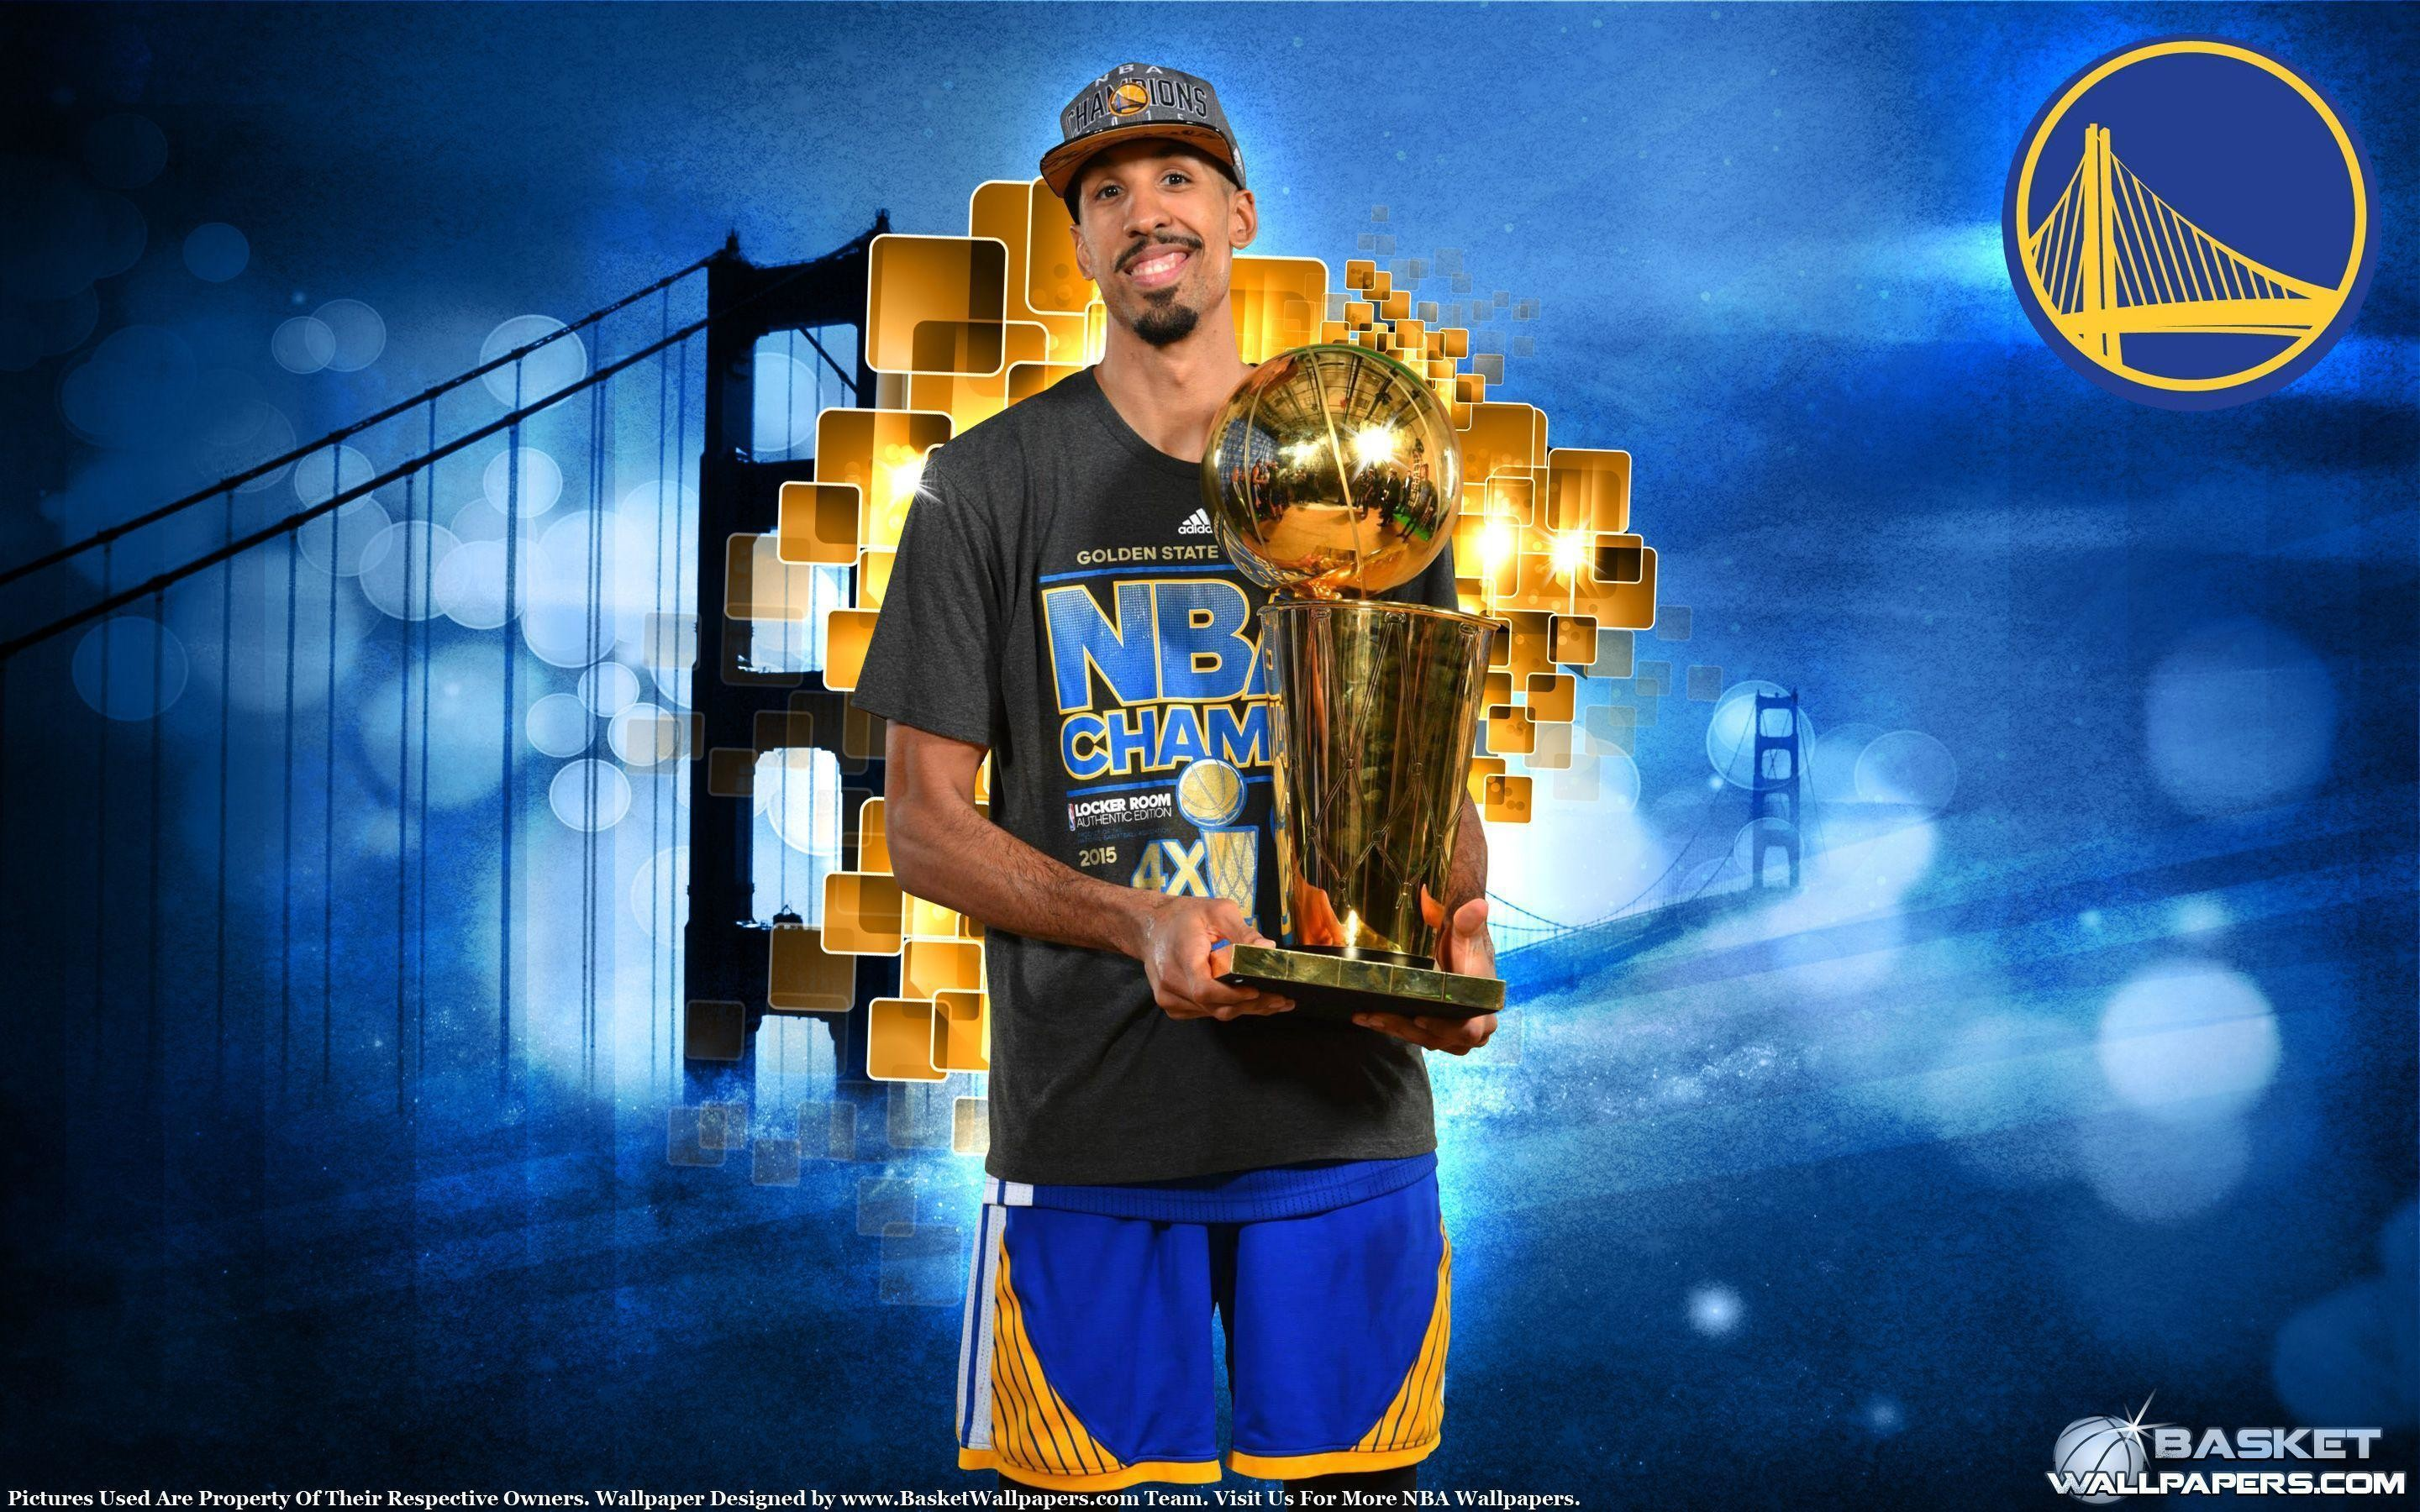 2880x1800 Golden State Warriors Wallpapers | Basketball Wallpapers at .